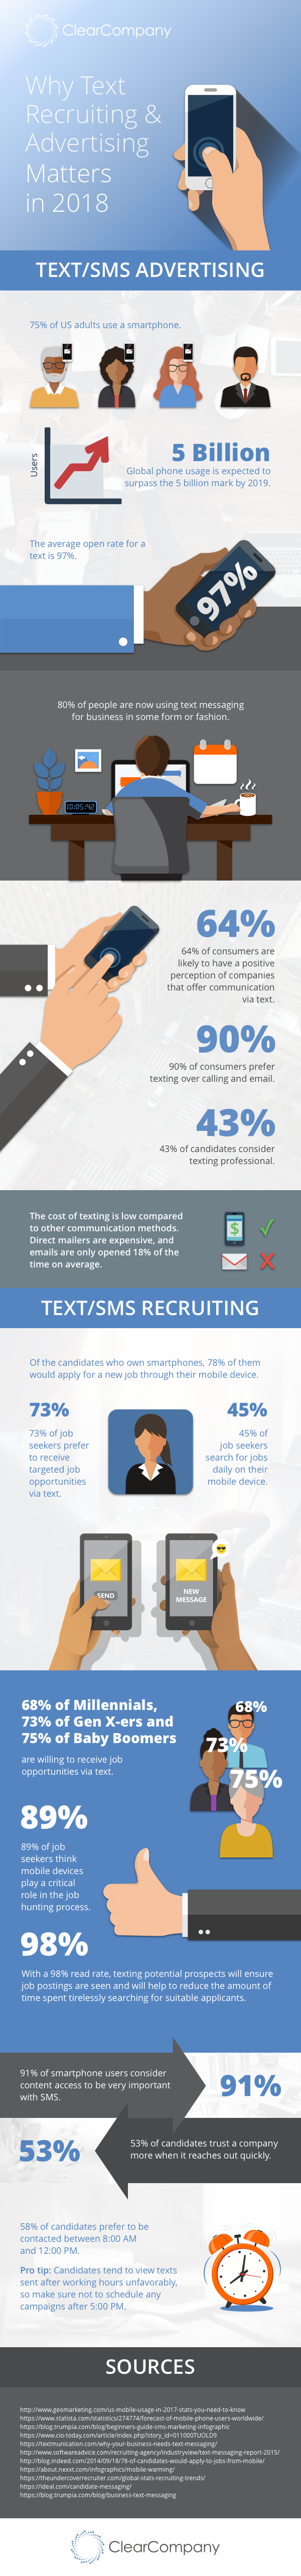 ClearCompany-text-infographic-FINAL